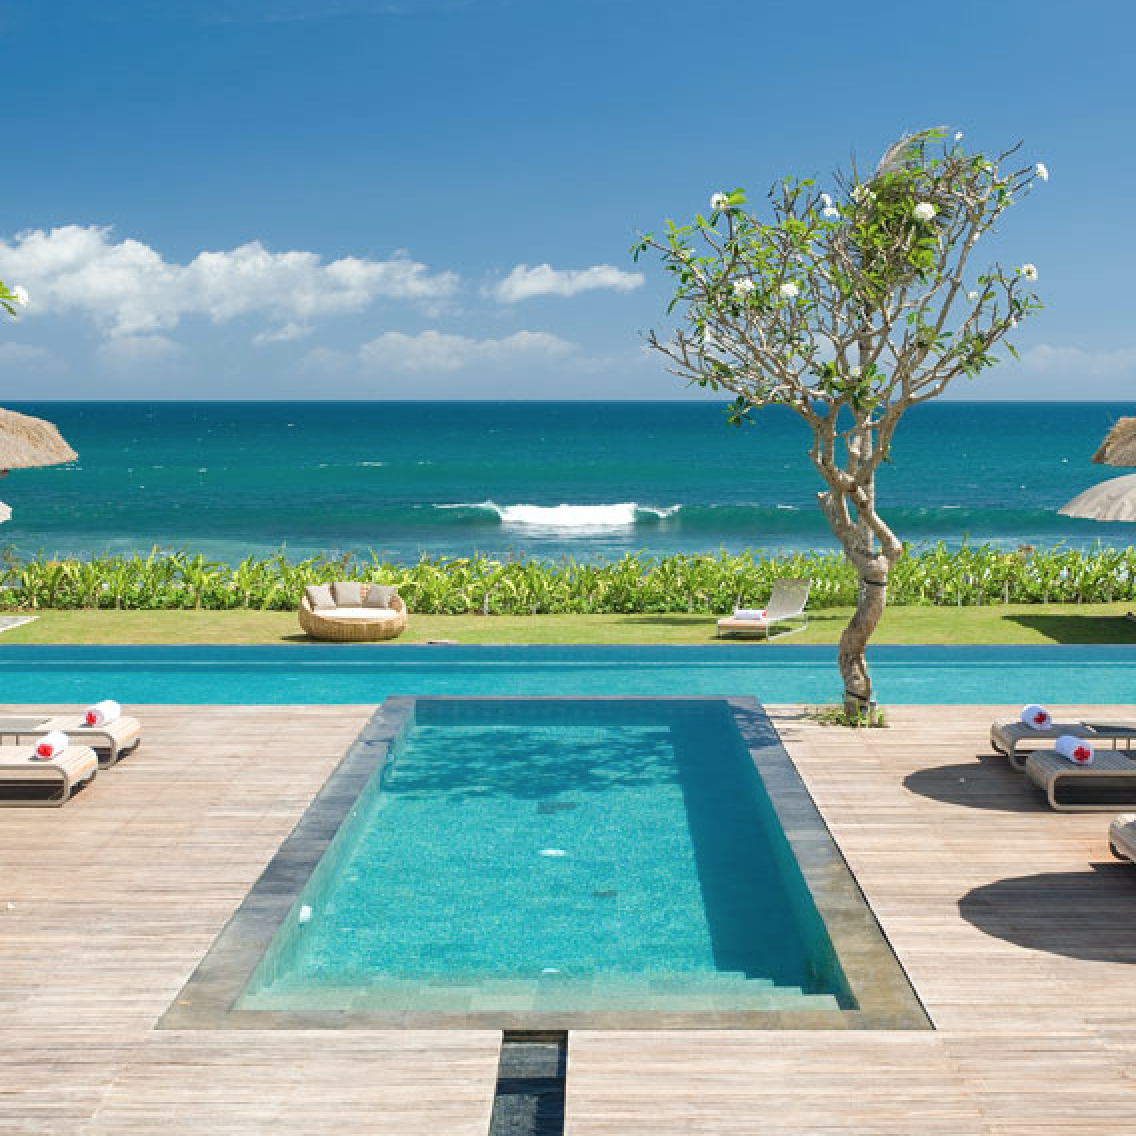 VILLA MELISSA, CANGGU, 5 bedrooms, $1,400 – $2,000 per night